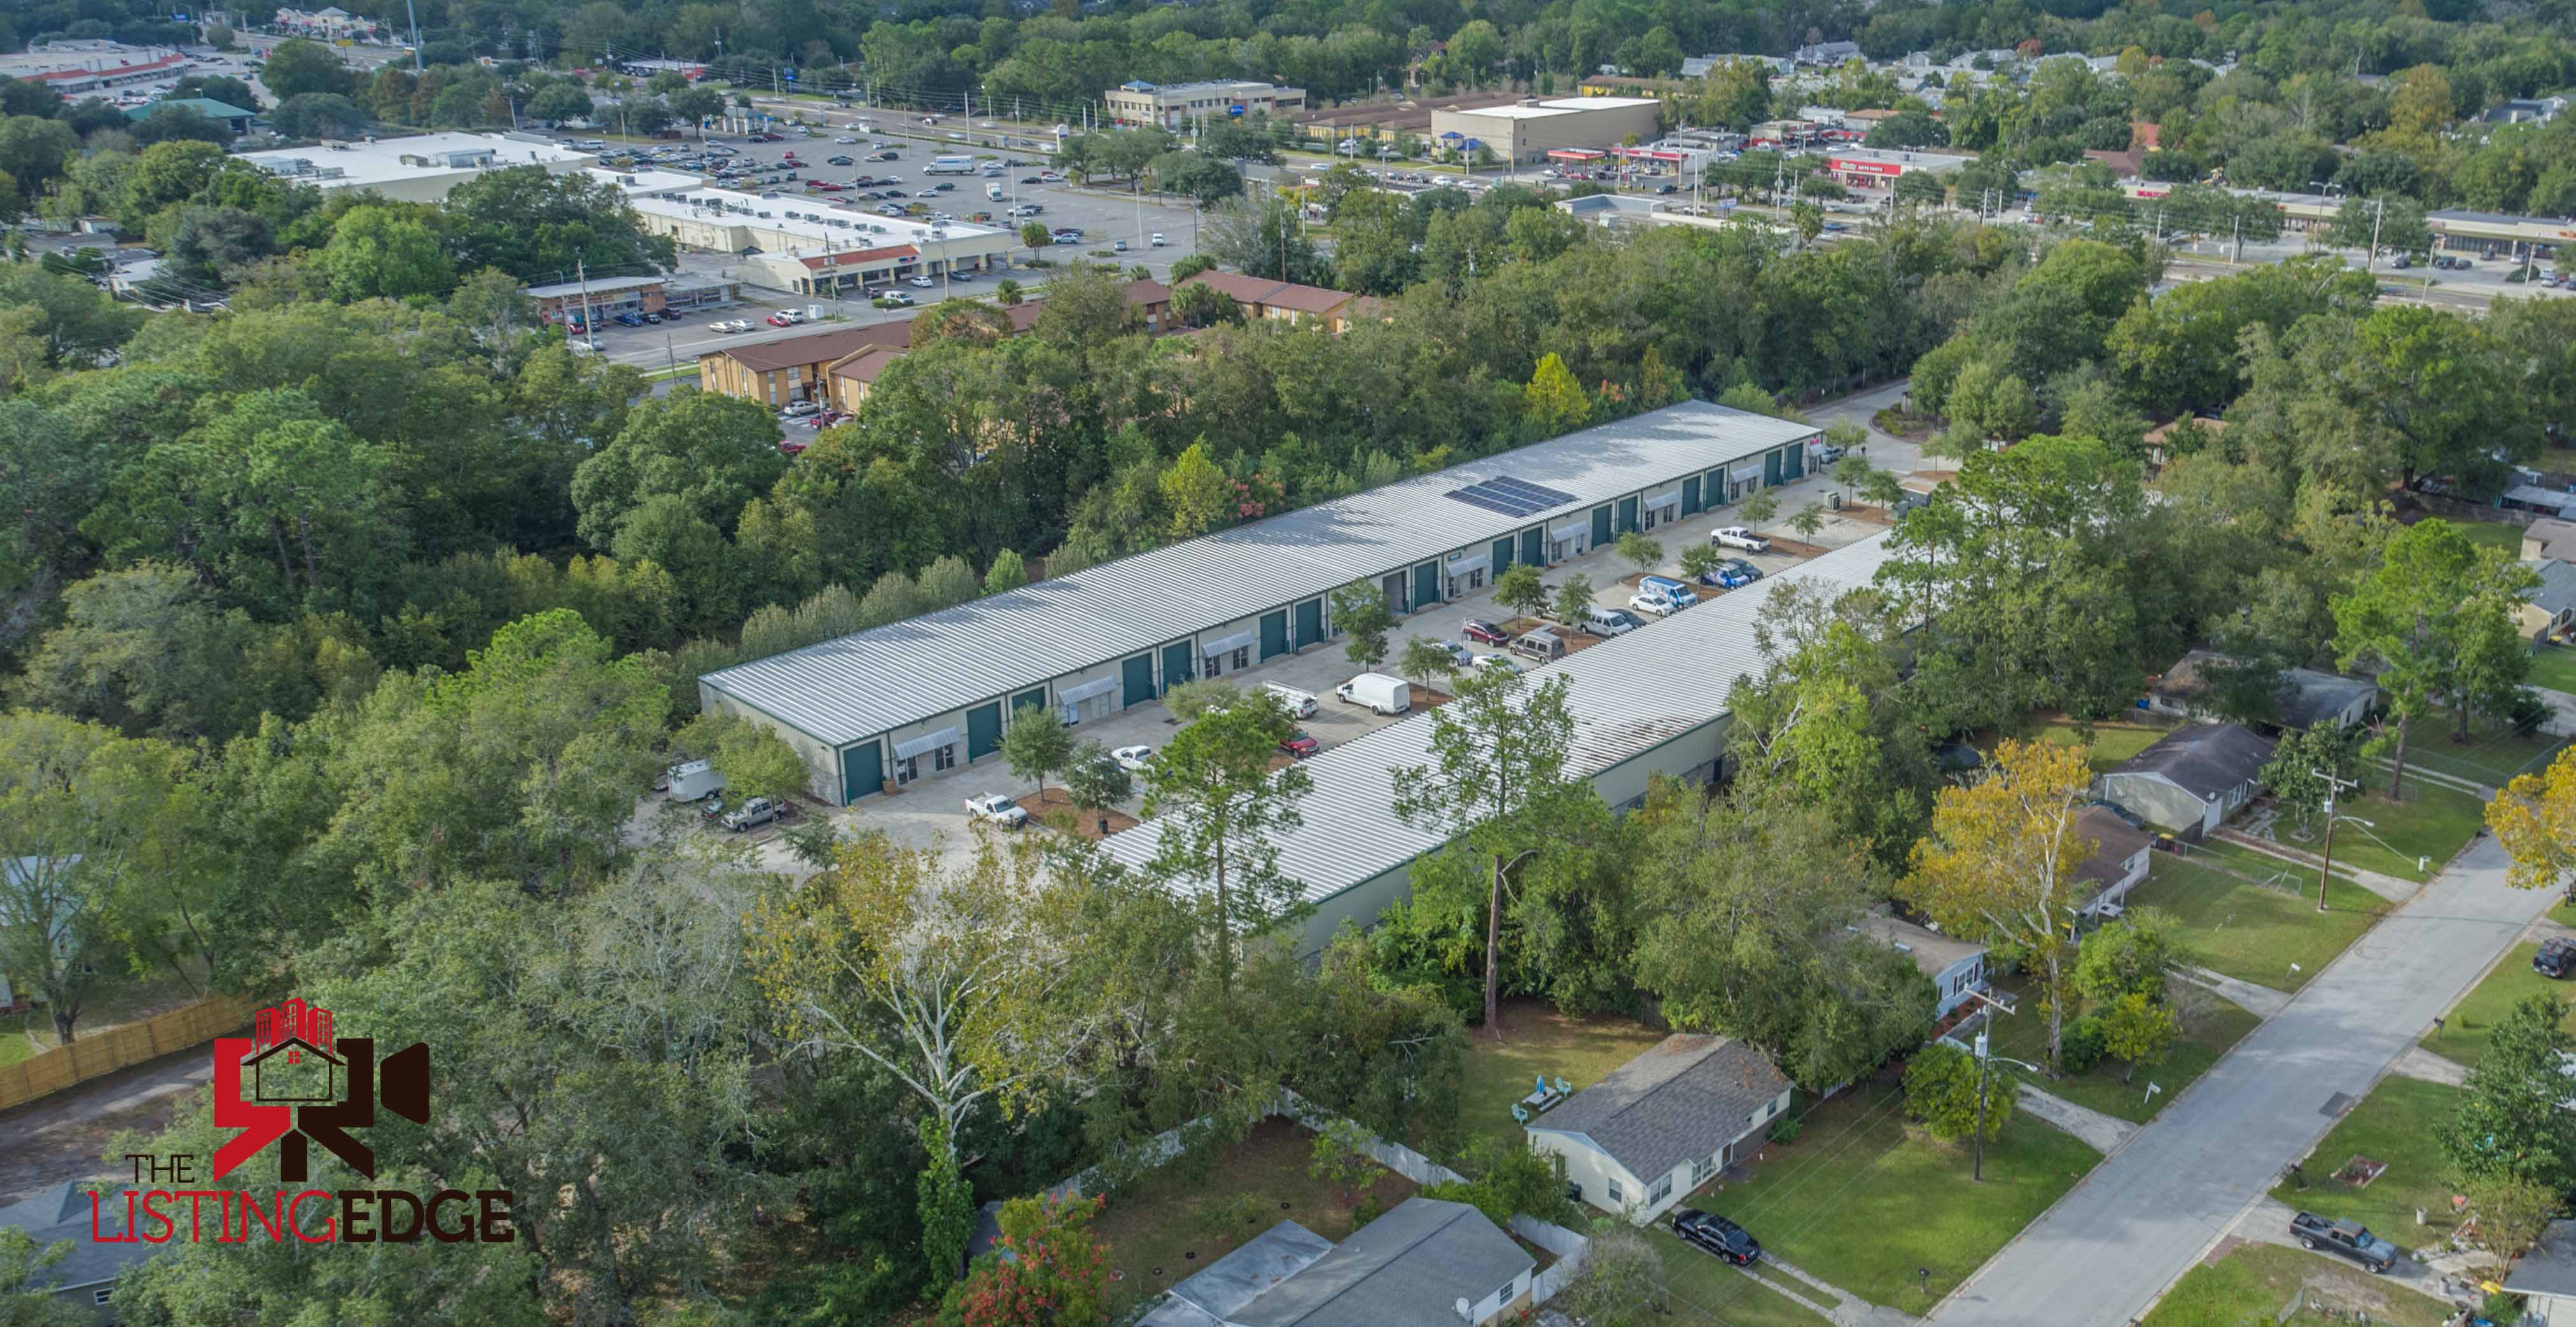 103rd St Commercial Park, 7540 103rd St, Jax, FL 32210, 1500 to 6000 sf, office/warehouse